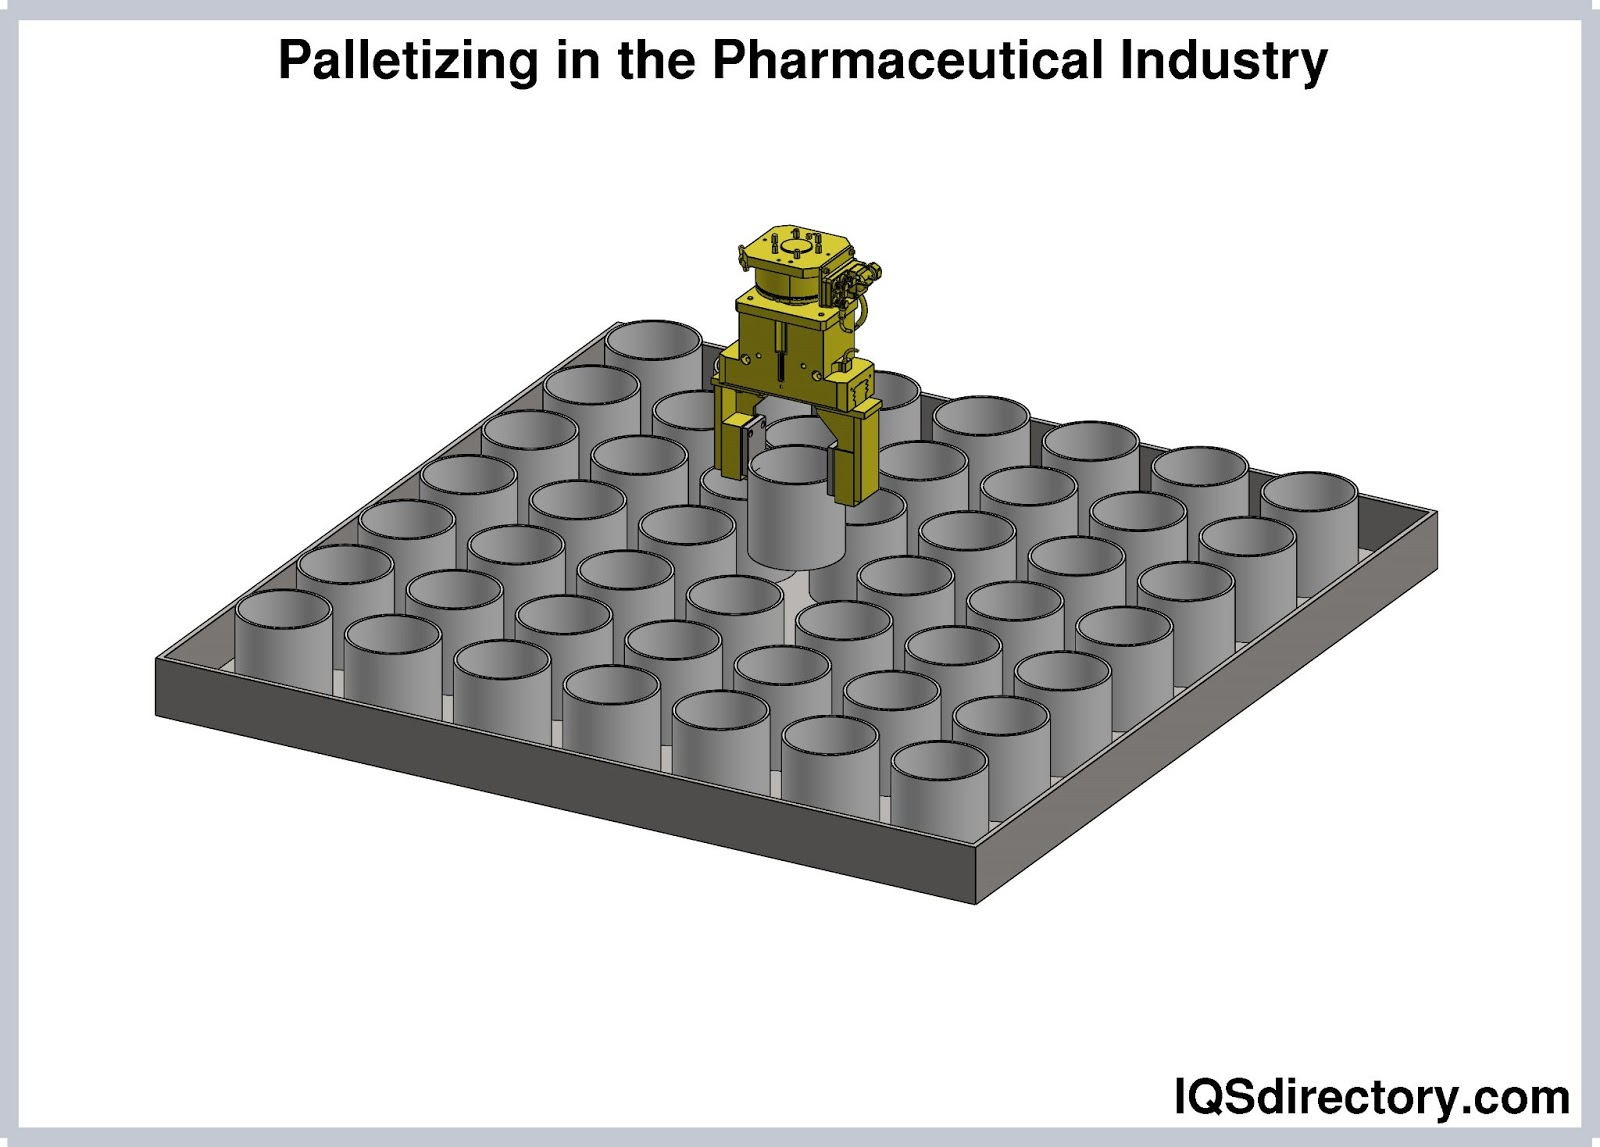 Palletizing in the Pharmaceutical Industry